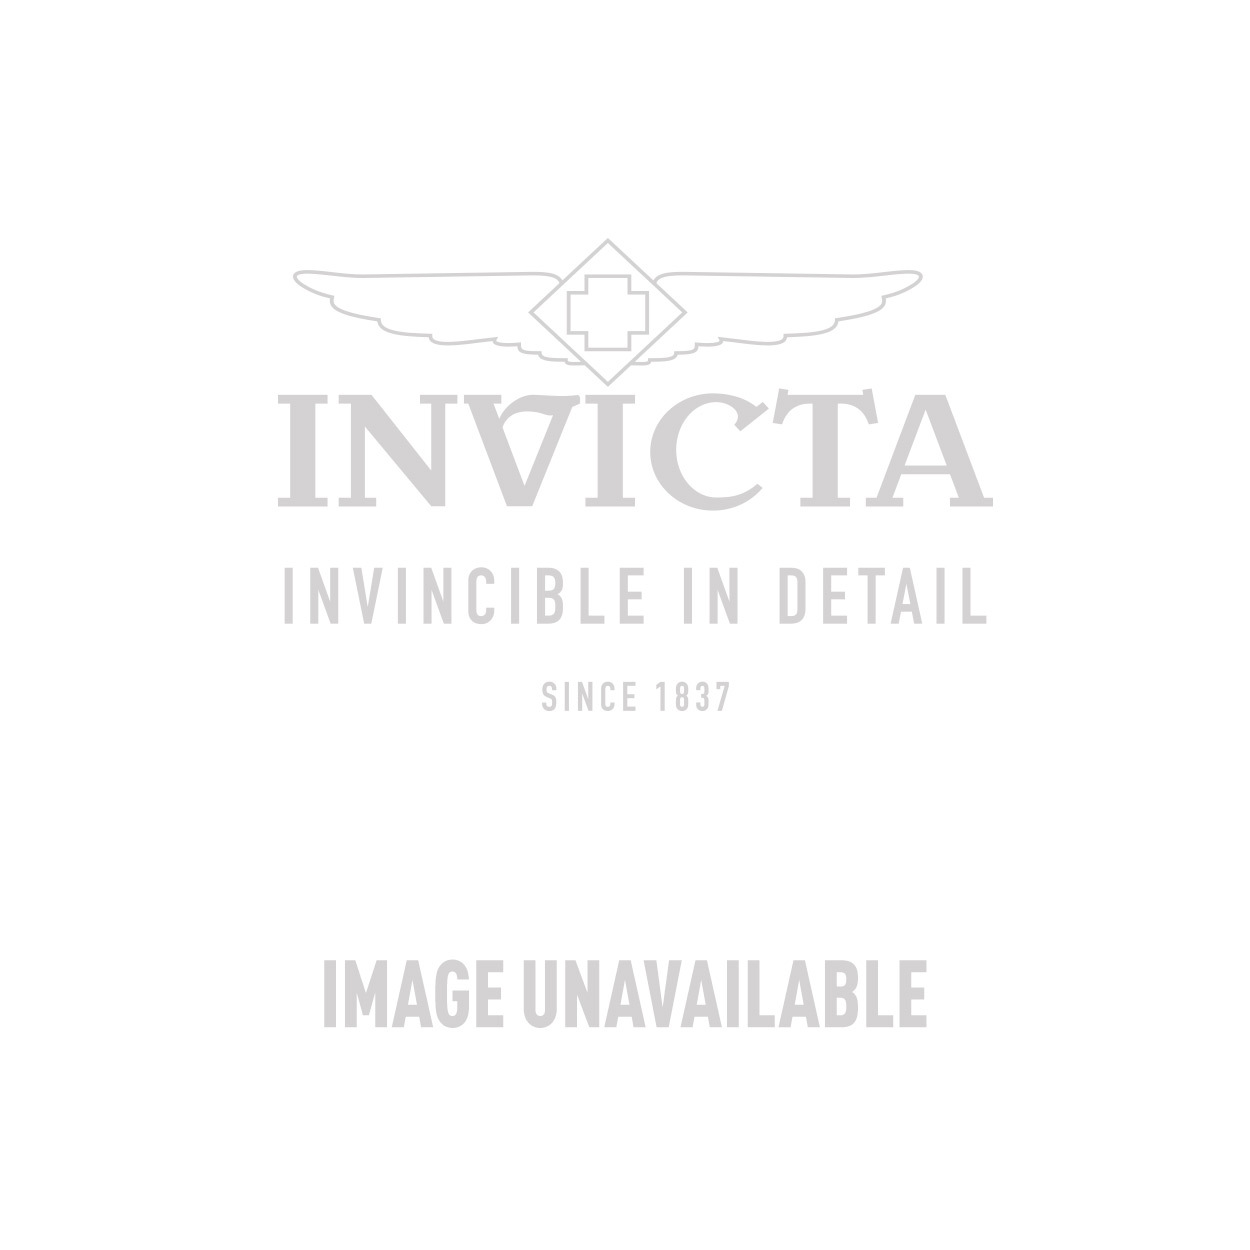 Invicta Speedway Quartz Watch - Stainless Steel case Stainless Steel band - Model 14381